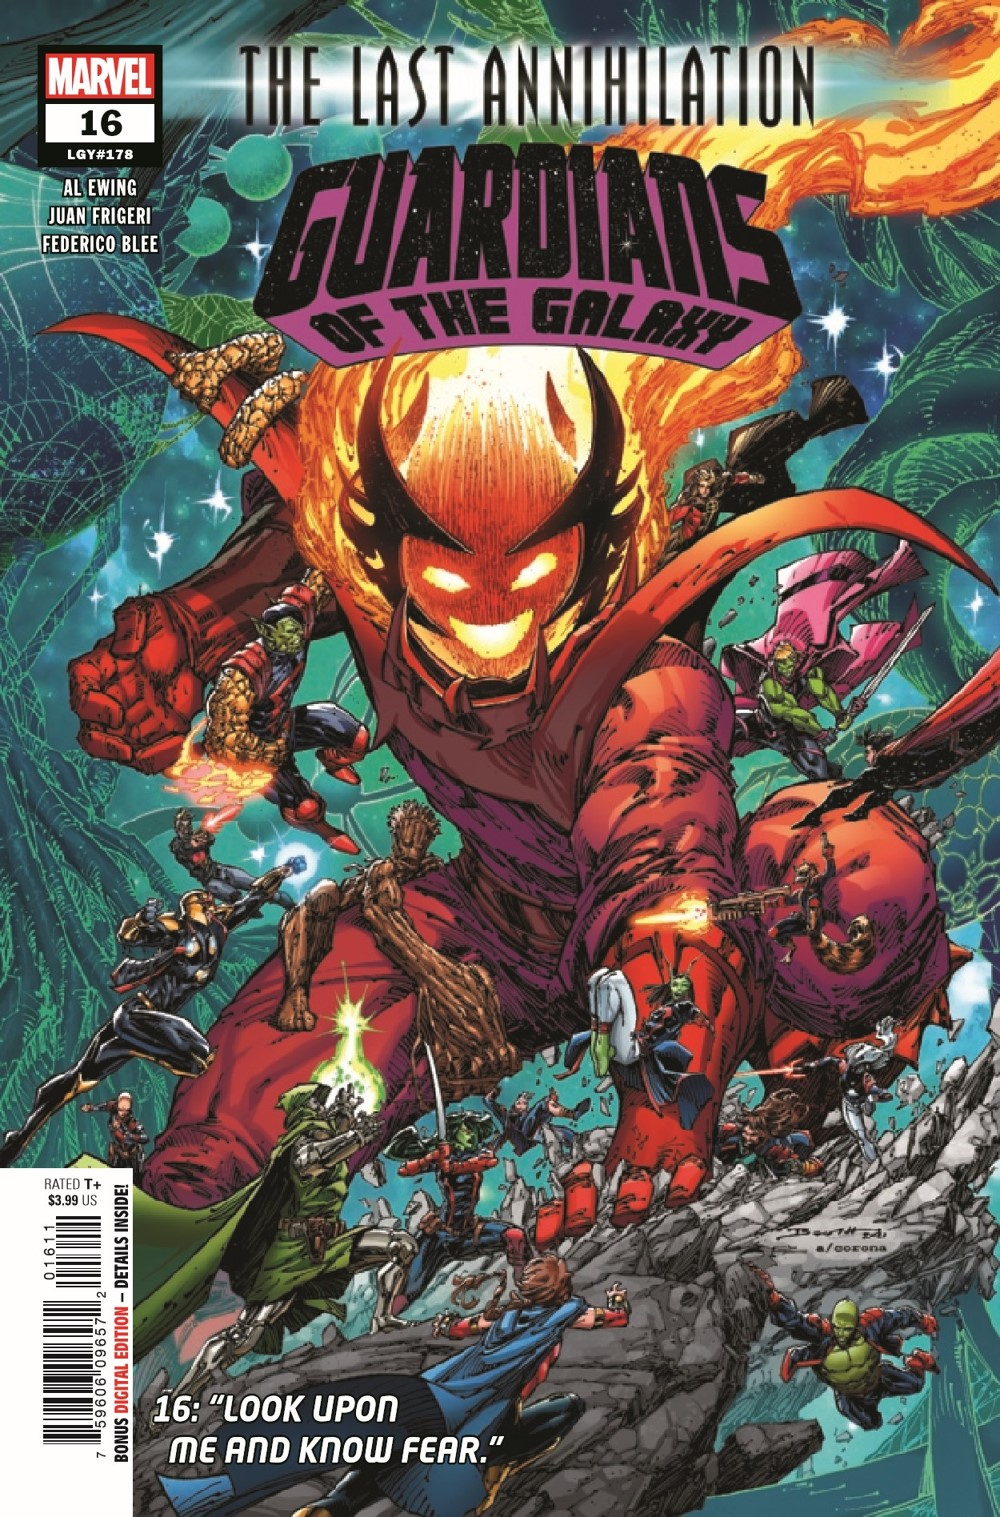 GARGAL2020016_Preview-1 ComicList Previews: GUARDIANS OF THE GALAXY #16